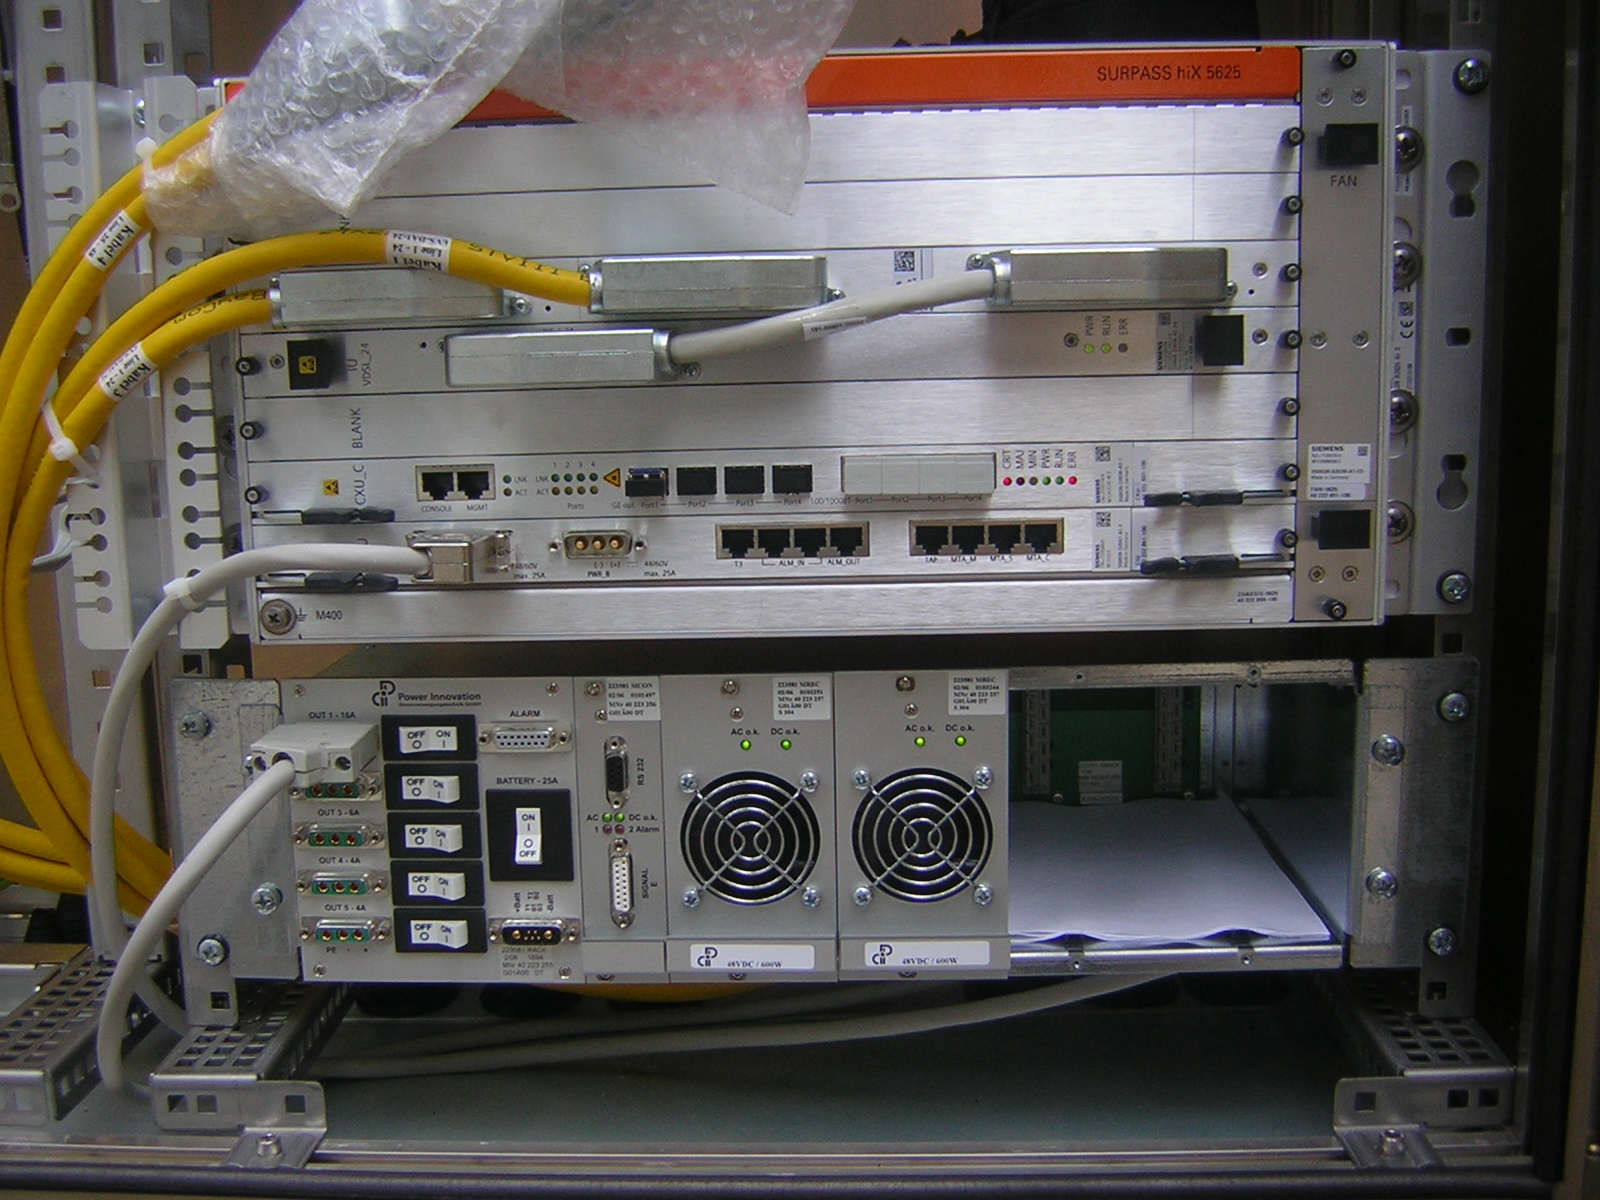 DSLAM equipment for providing DSL Internet access.